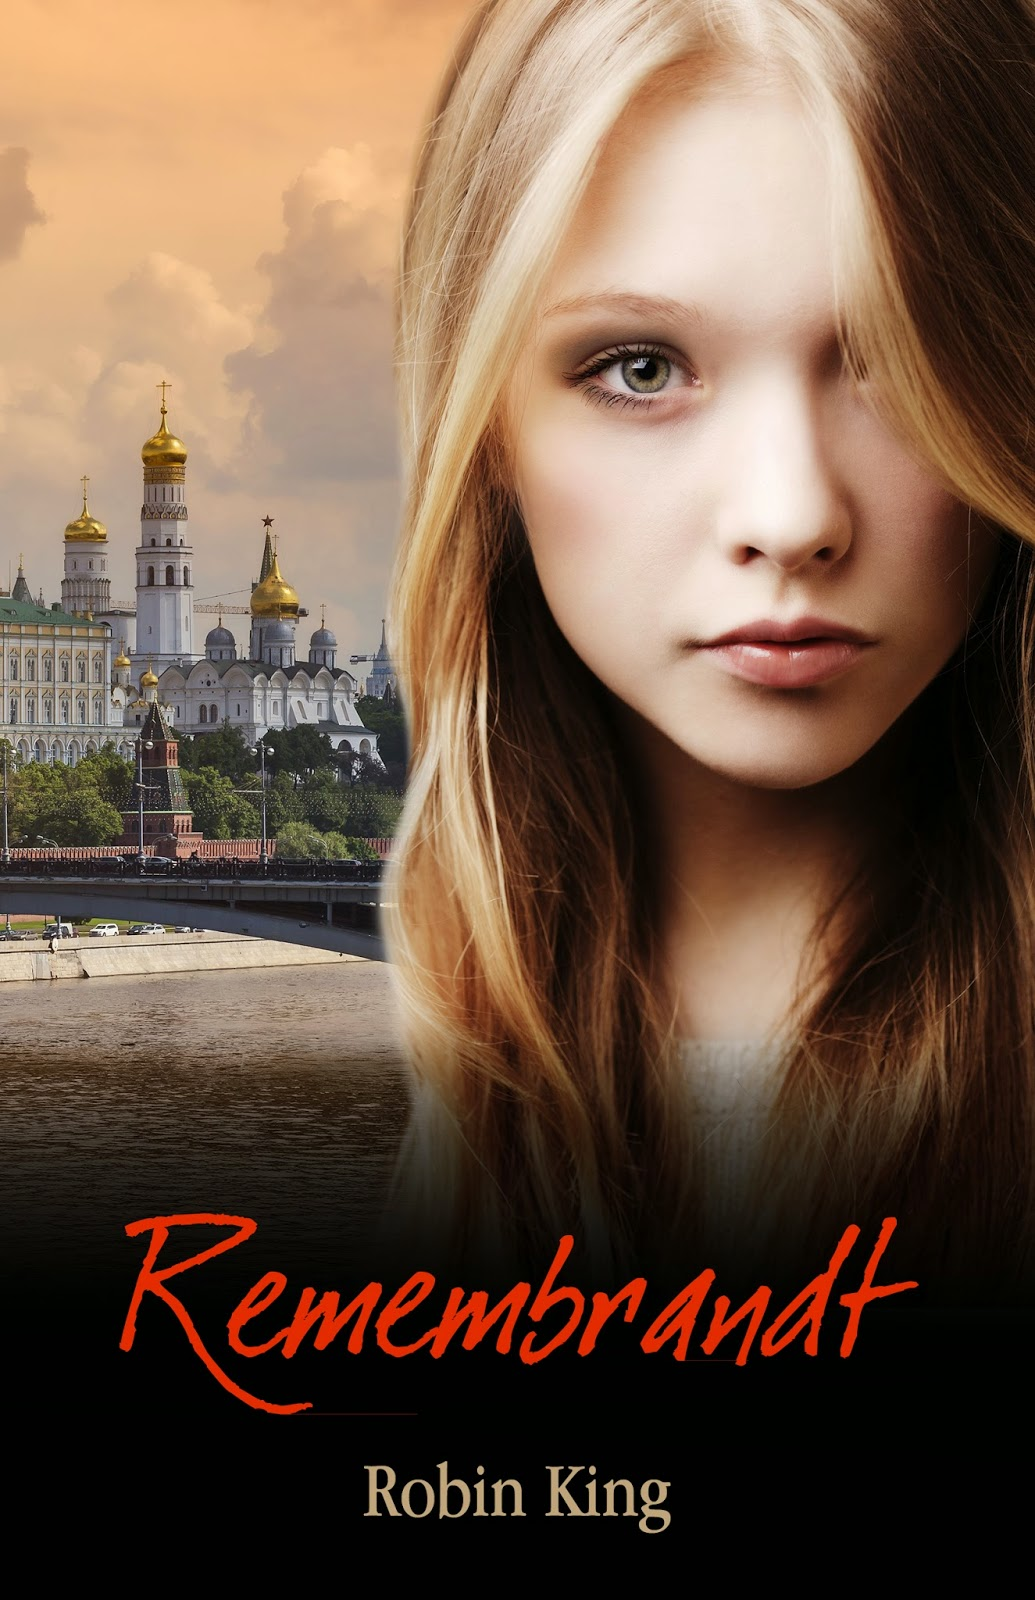 Young Adult suspense and romance